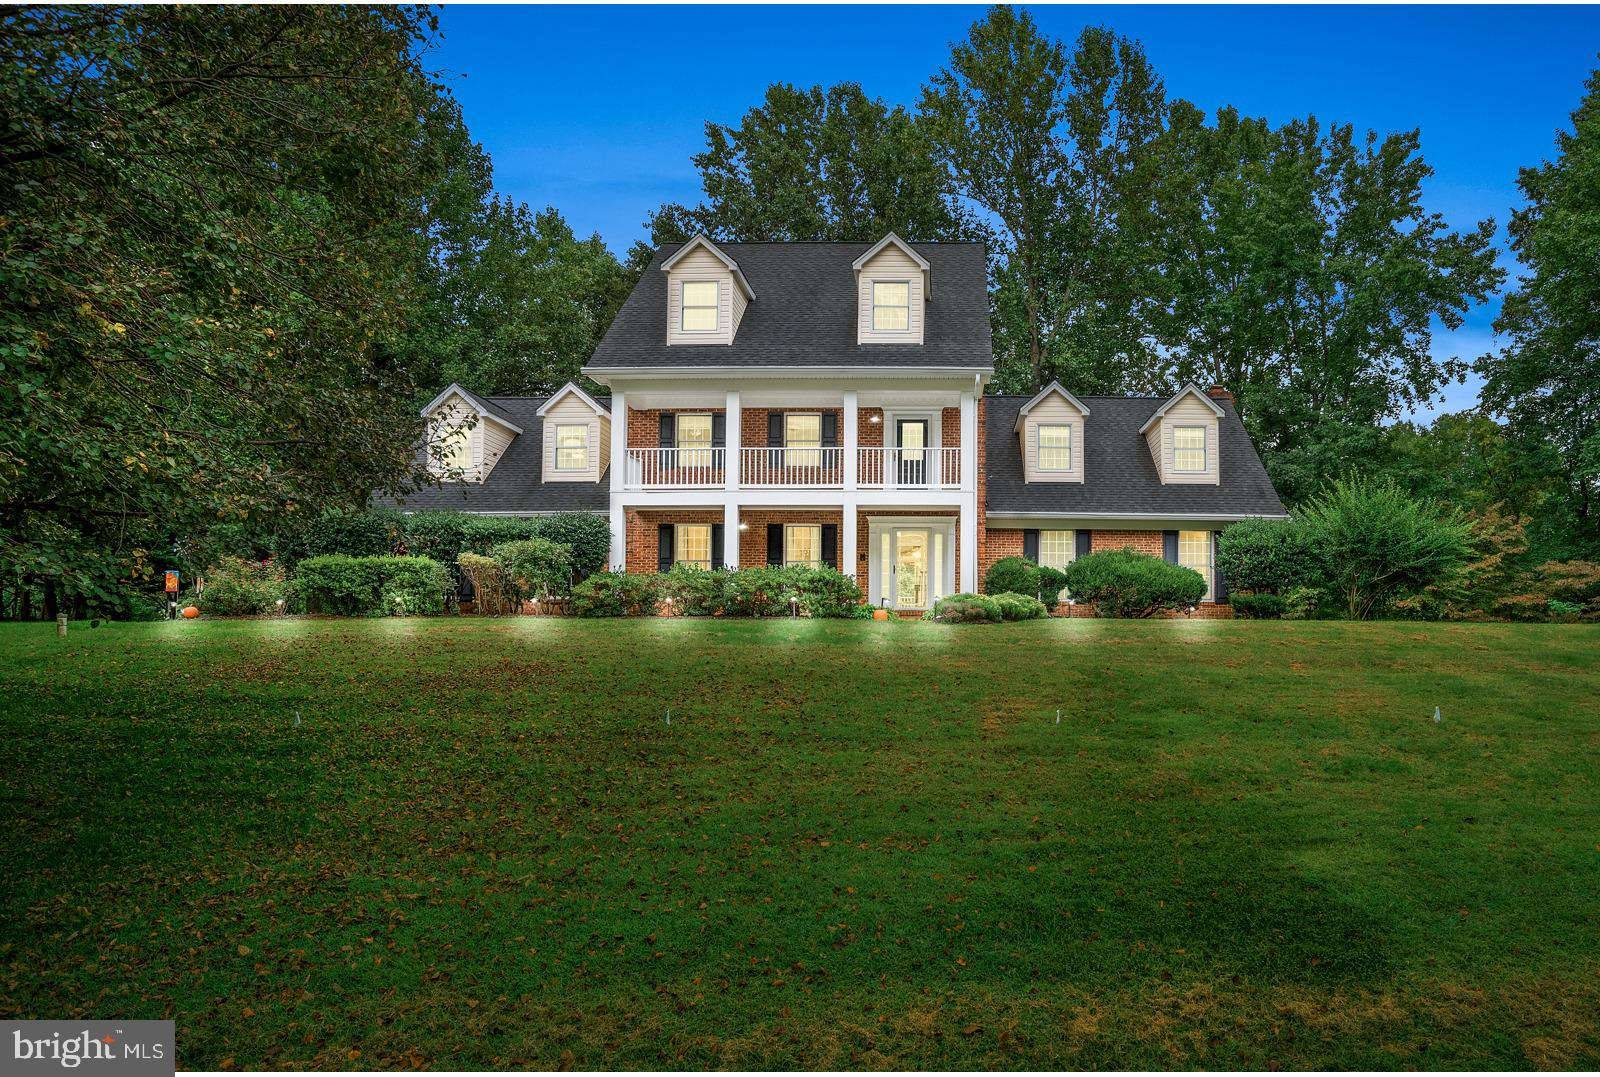 Spectacular 5 bedroom 4.5 bath Southern Colonial sitting on almost an acre and located in the sought